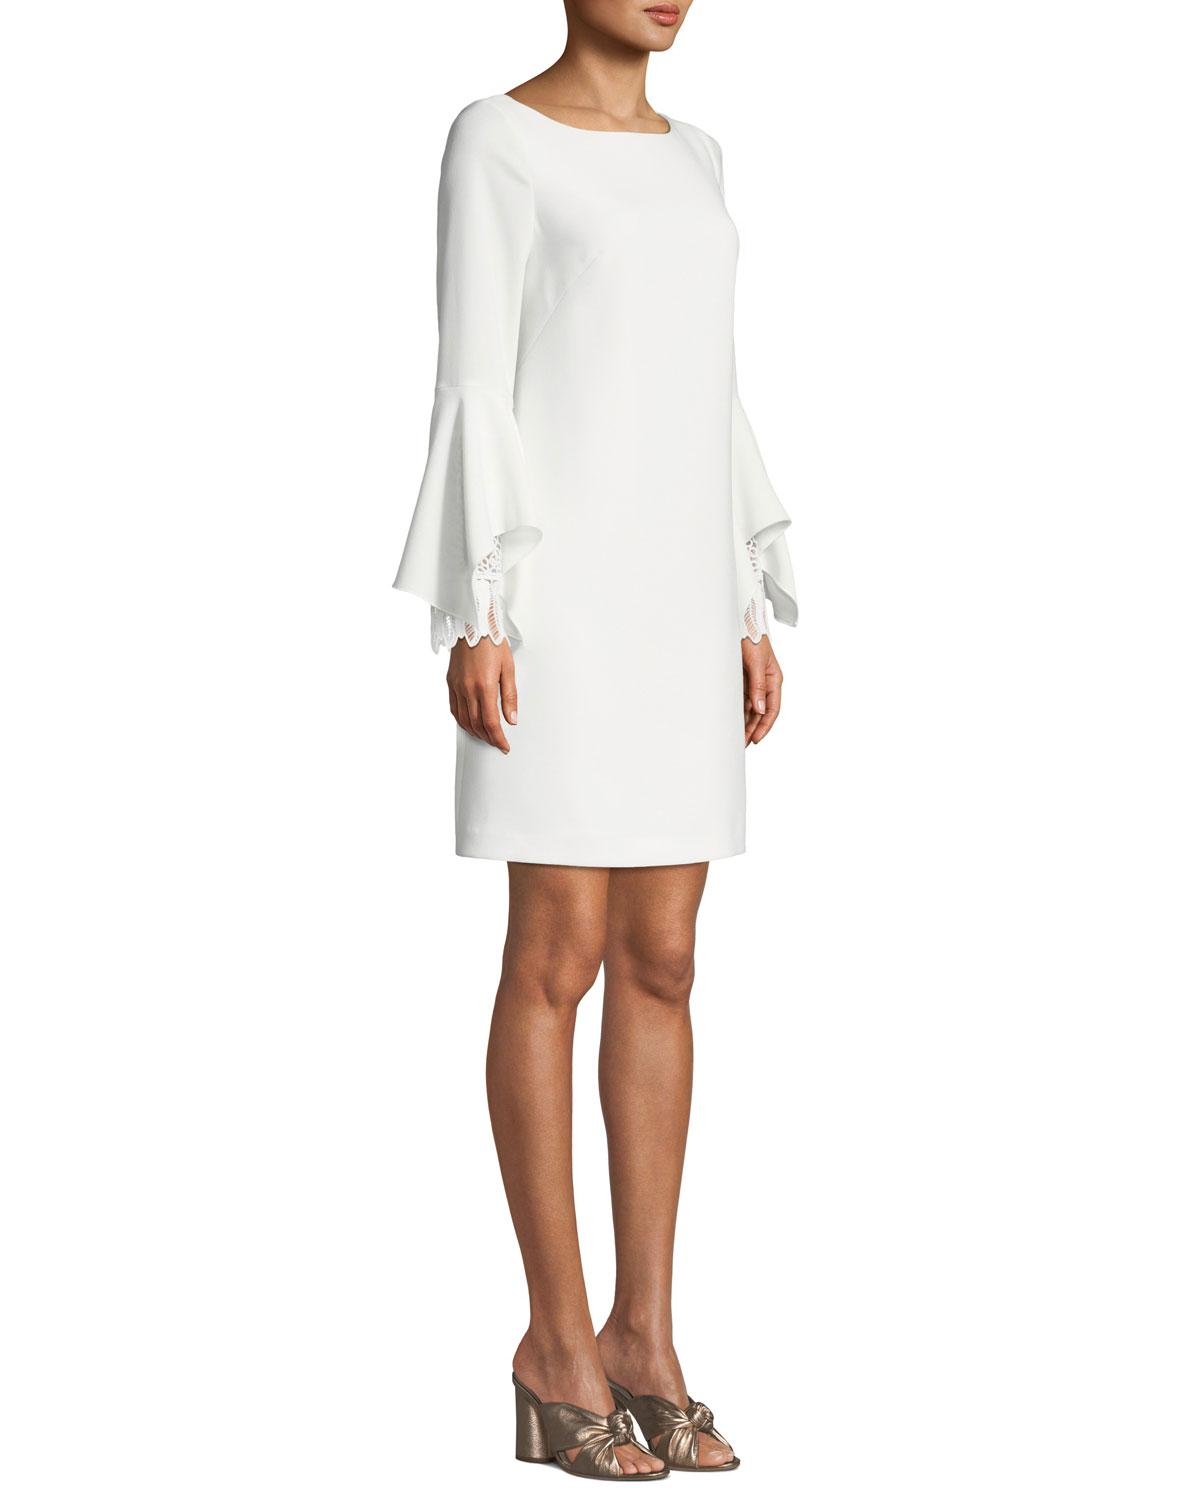 3041217b951e Lyst - Elie Tahari Dori Boat-neck Flared-sleeve Sheath Dress in ...